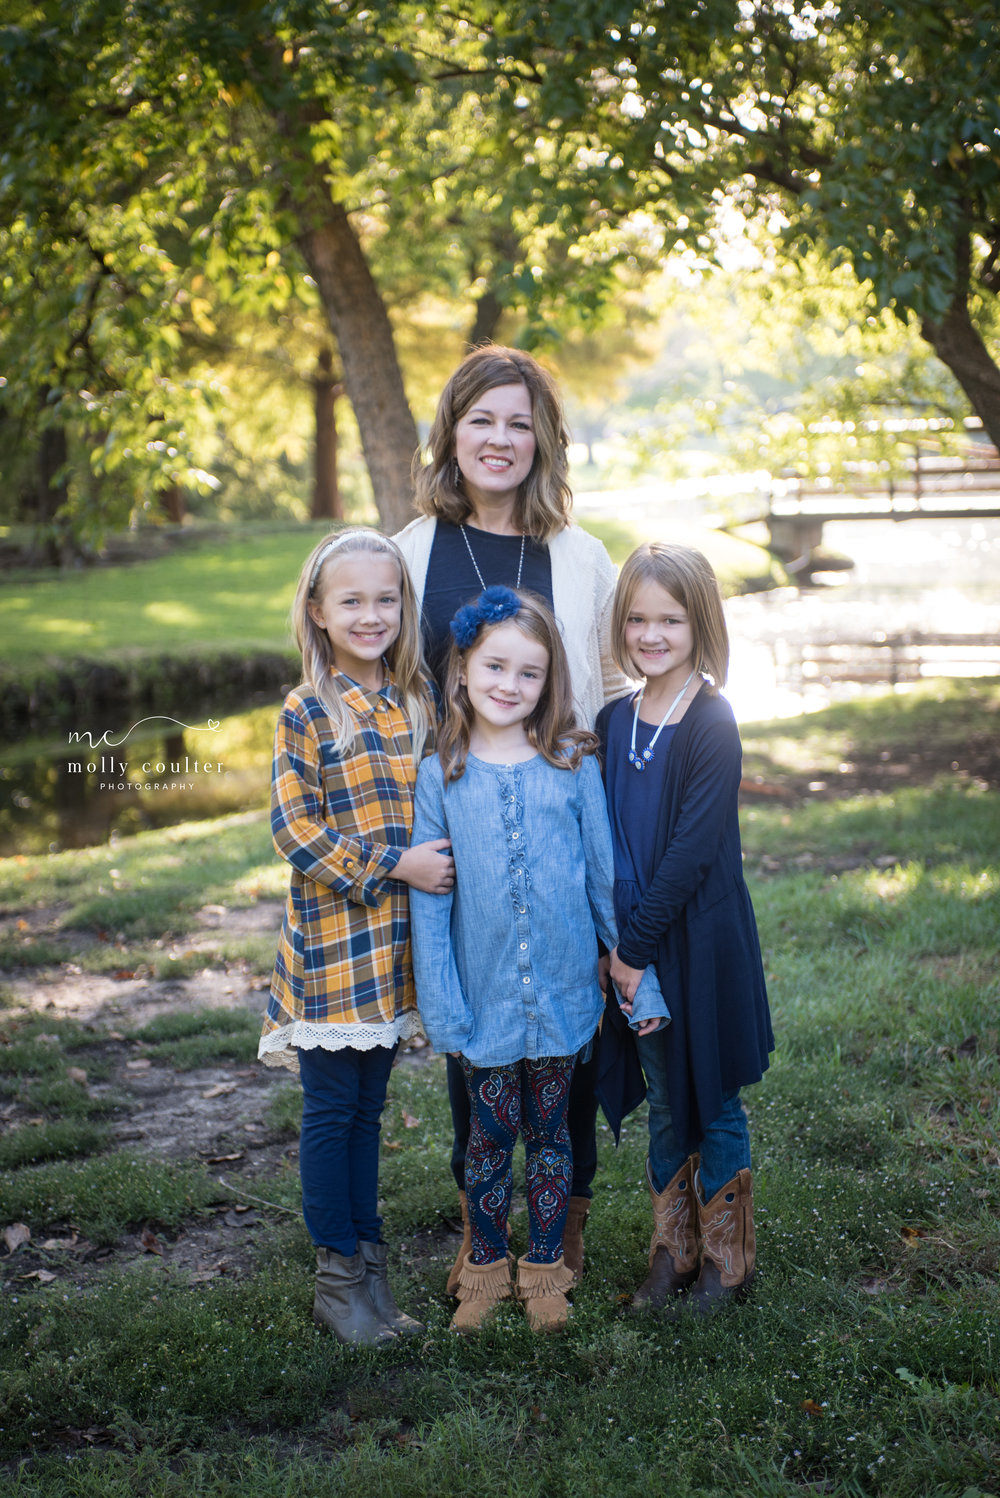 dallasfamilyphotographermollycoulterphotography